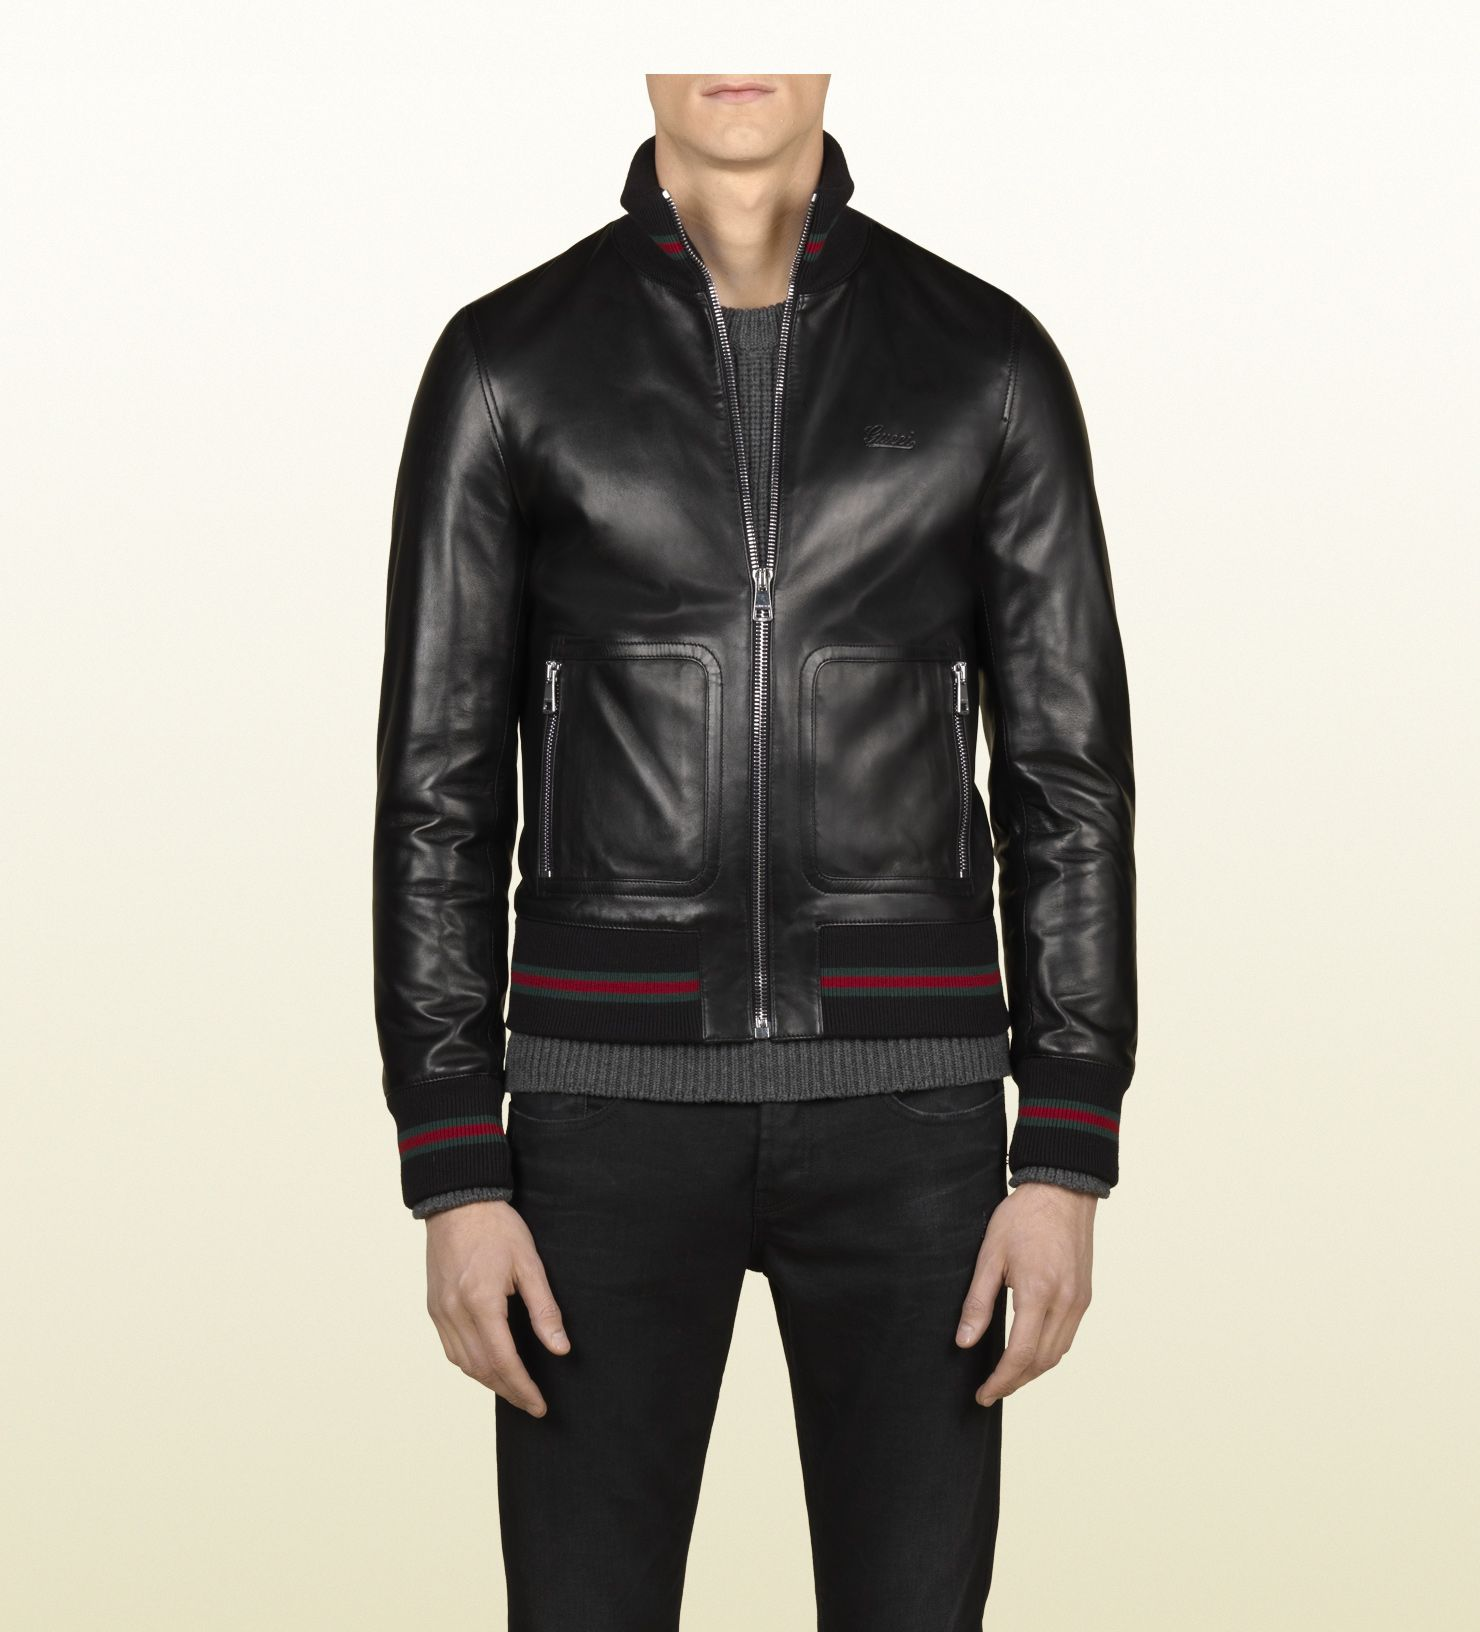 374f13835 Gucci black leather bomber jacket | STYLE in 2019 | Black leather ...